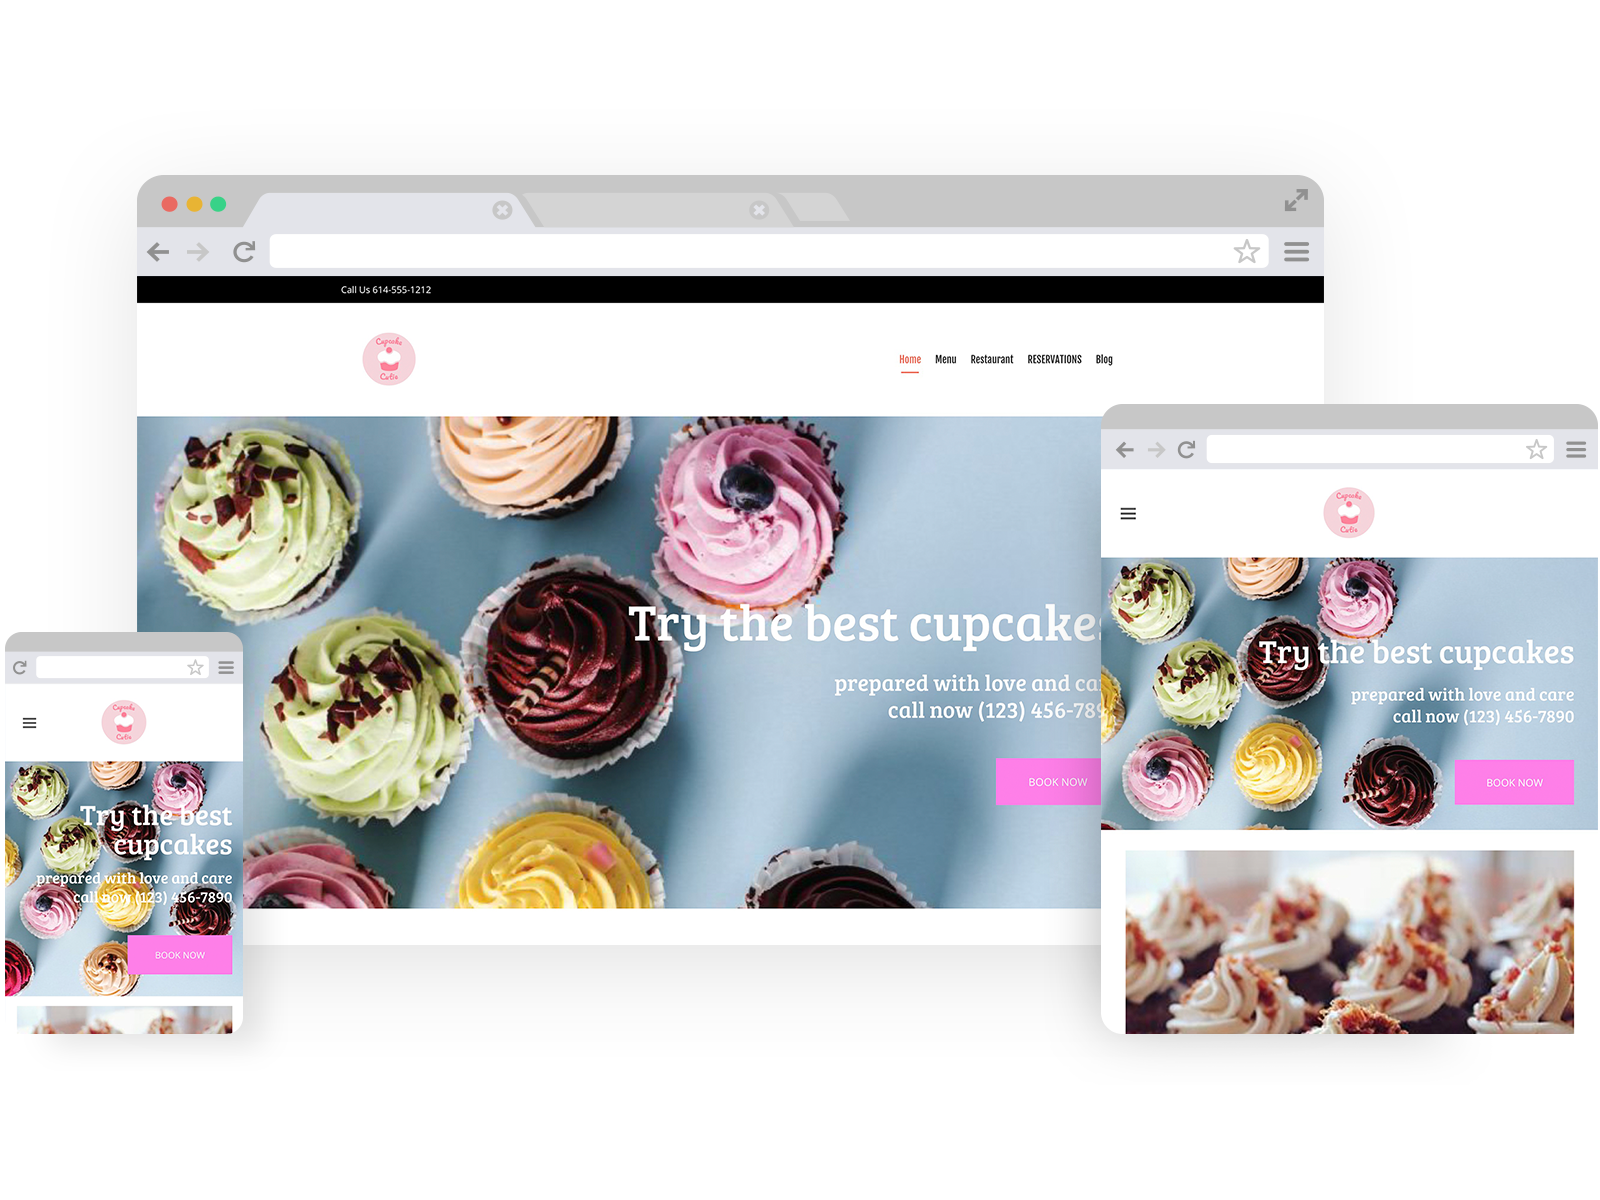 Cupcake bakery templates - template shown on Desktop, Tablet, and Mobile views.